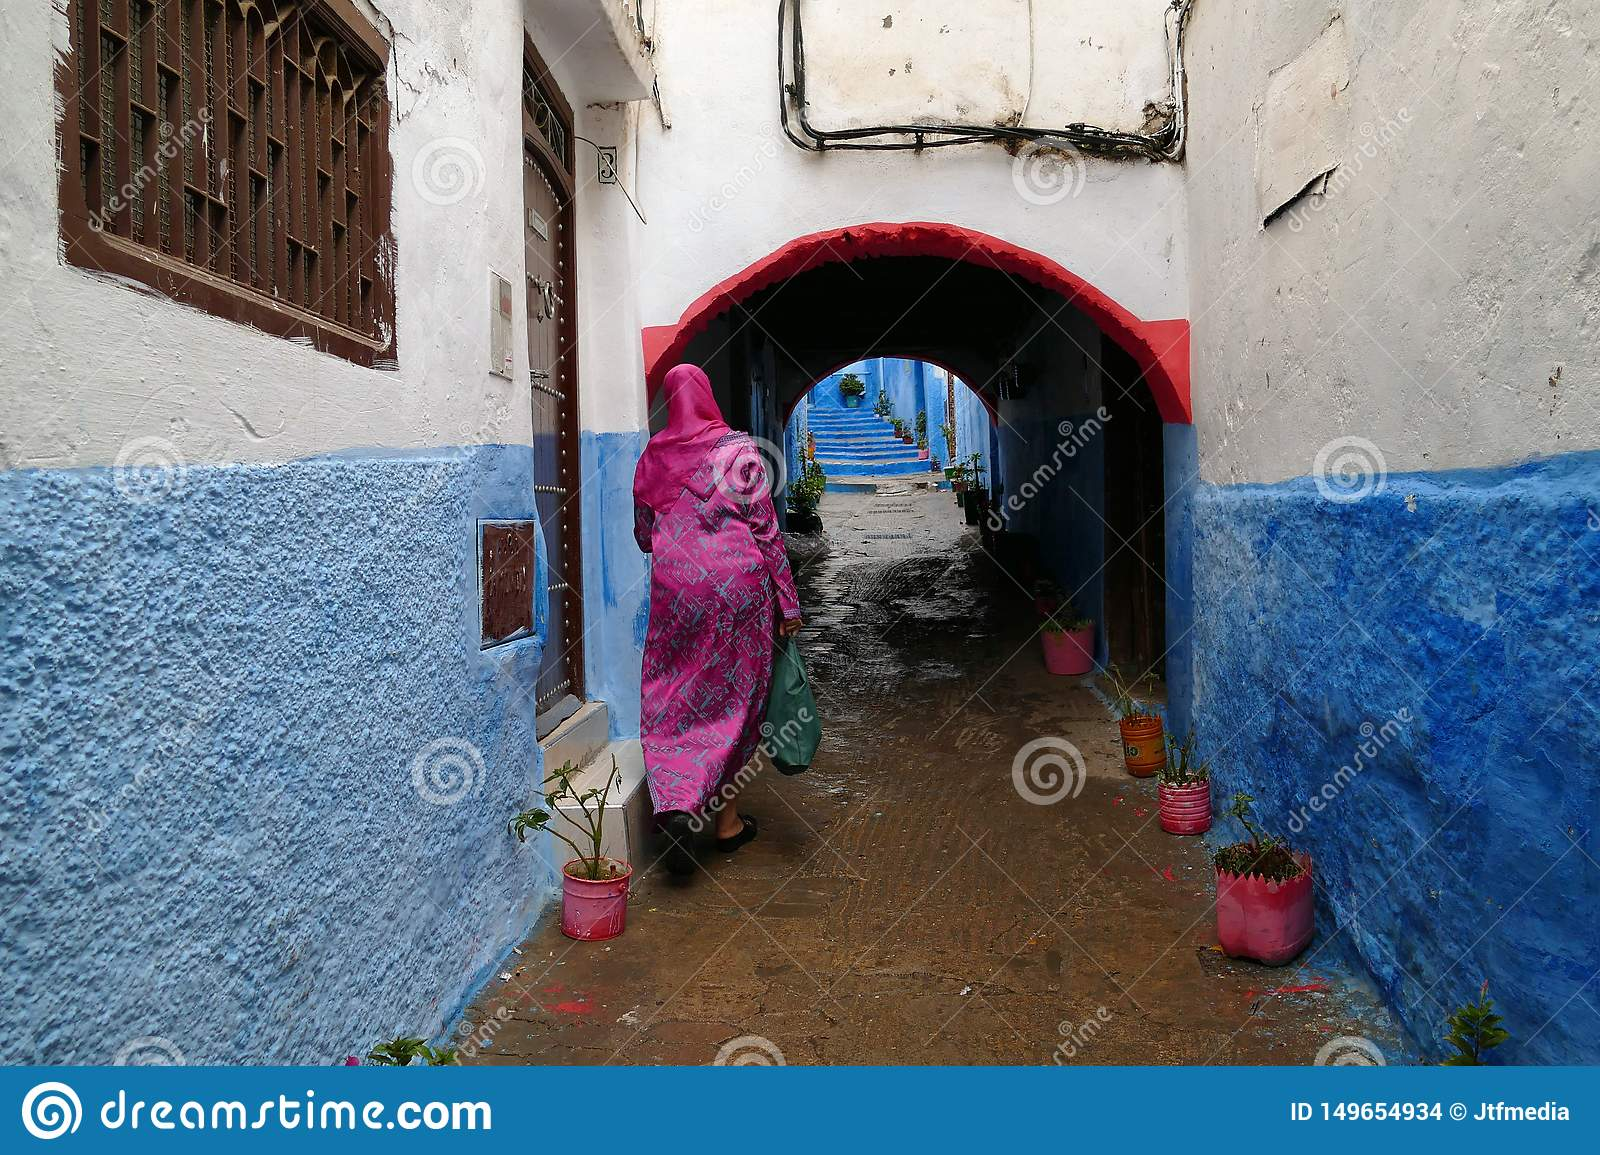 Woman with pink dress walking in a little colorful alley, medina of Tétouan, North of Morocco, Africa